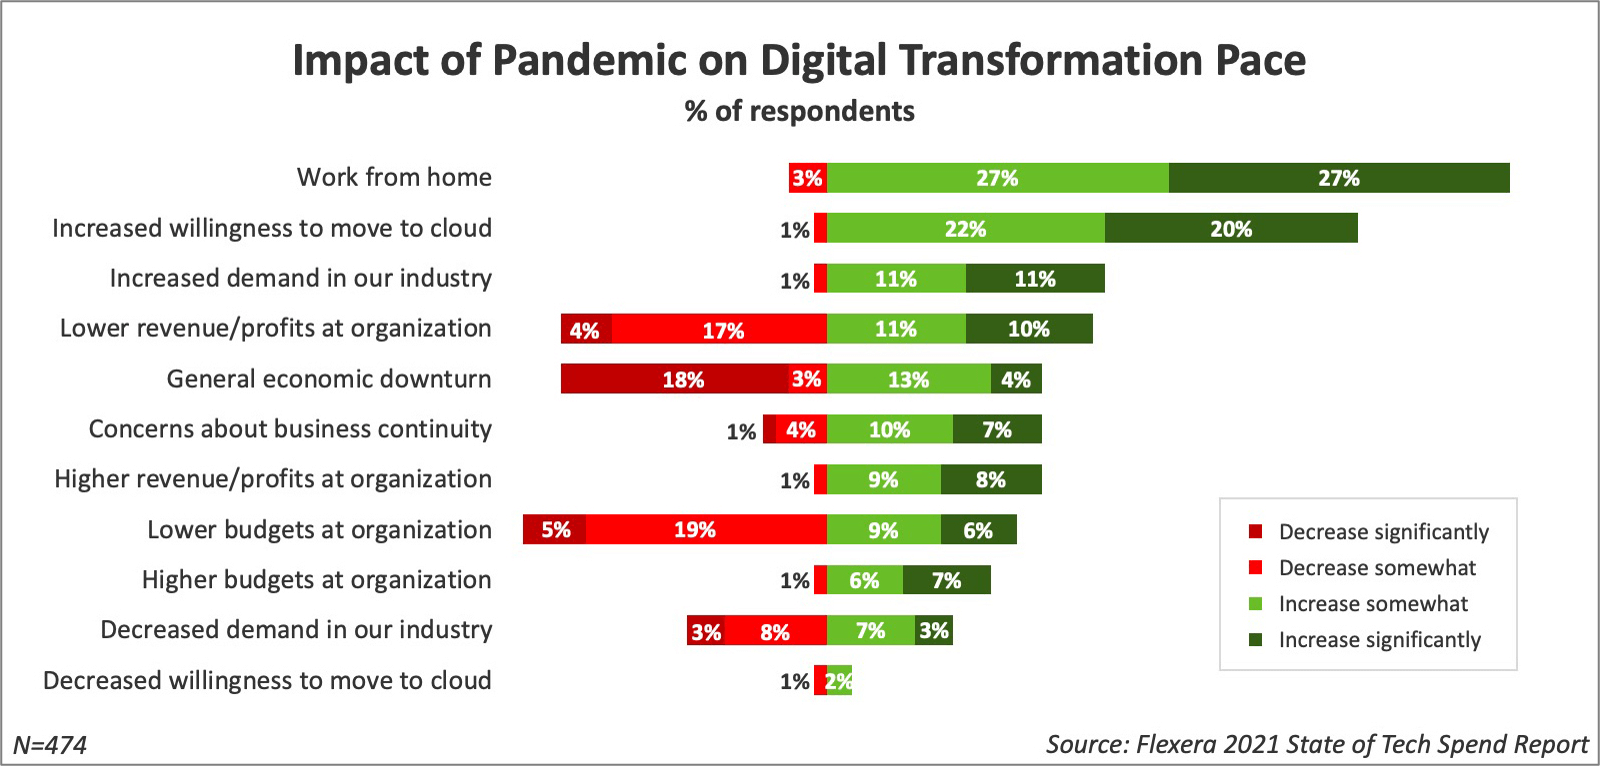 How the pandemic is impacting digital transformation